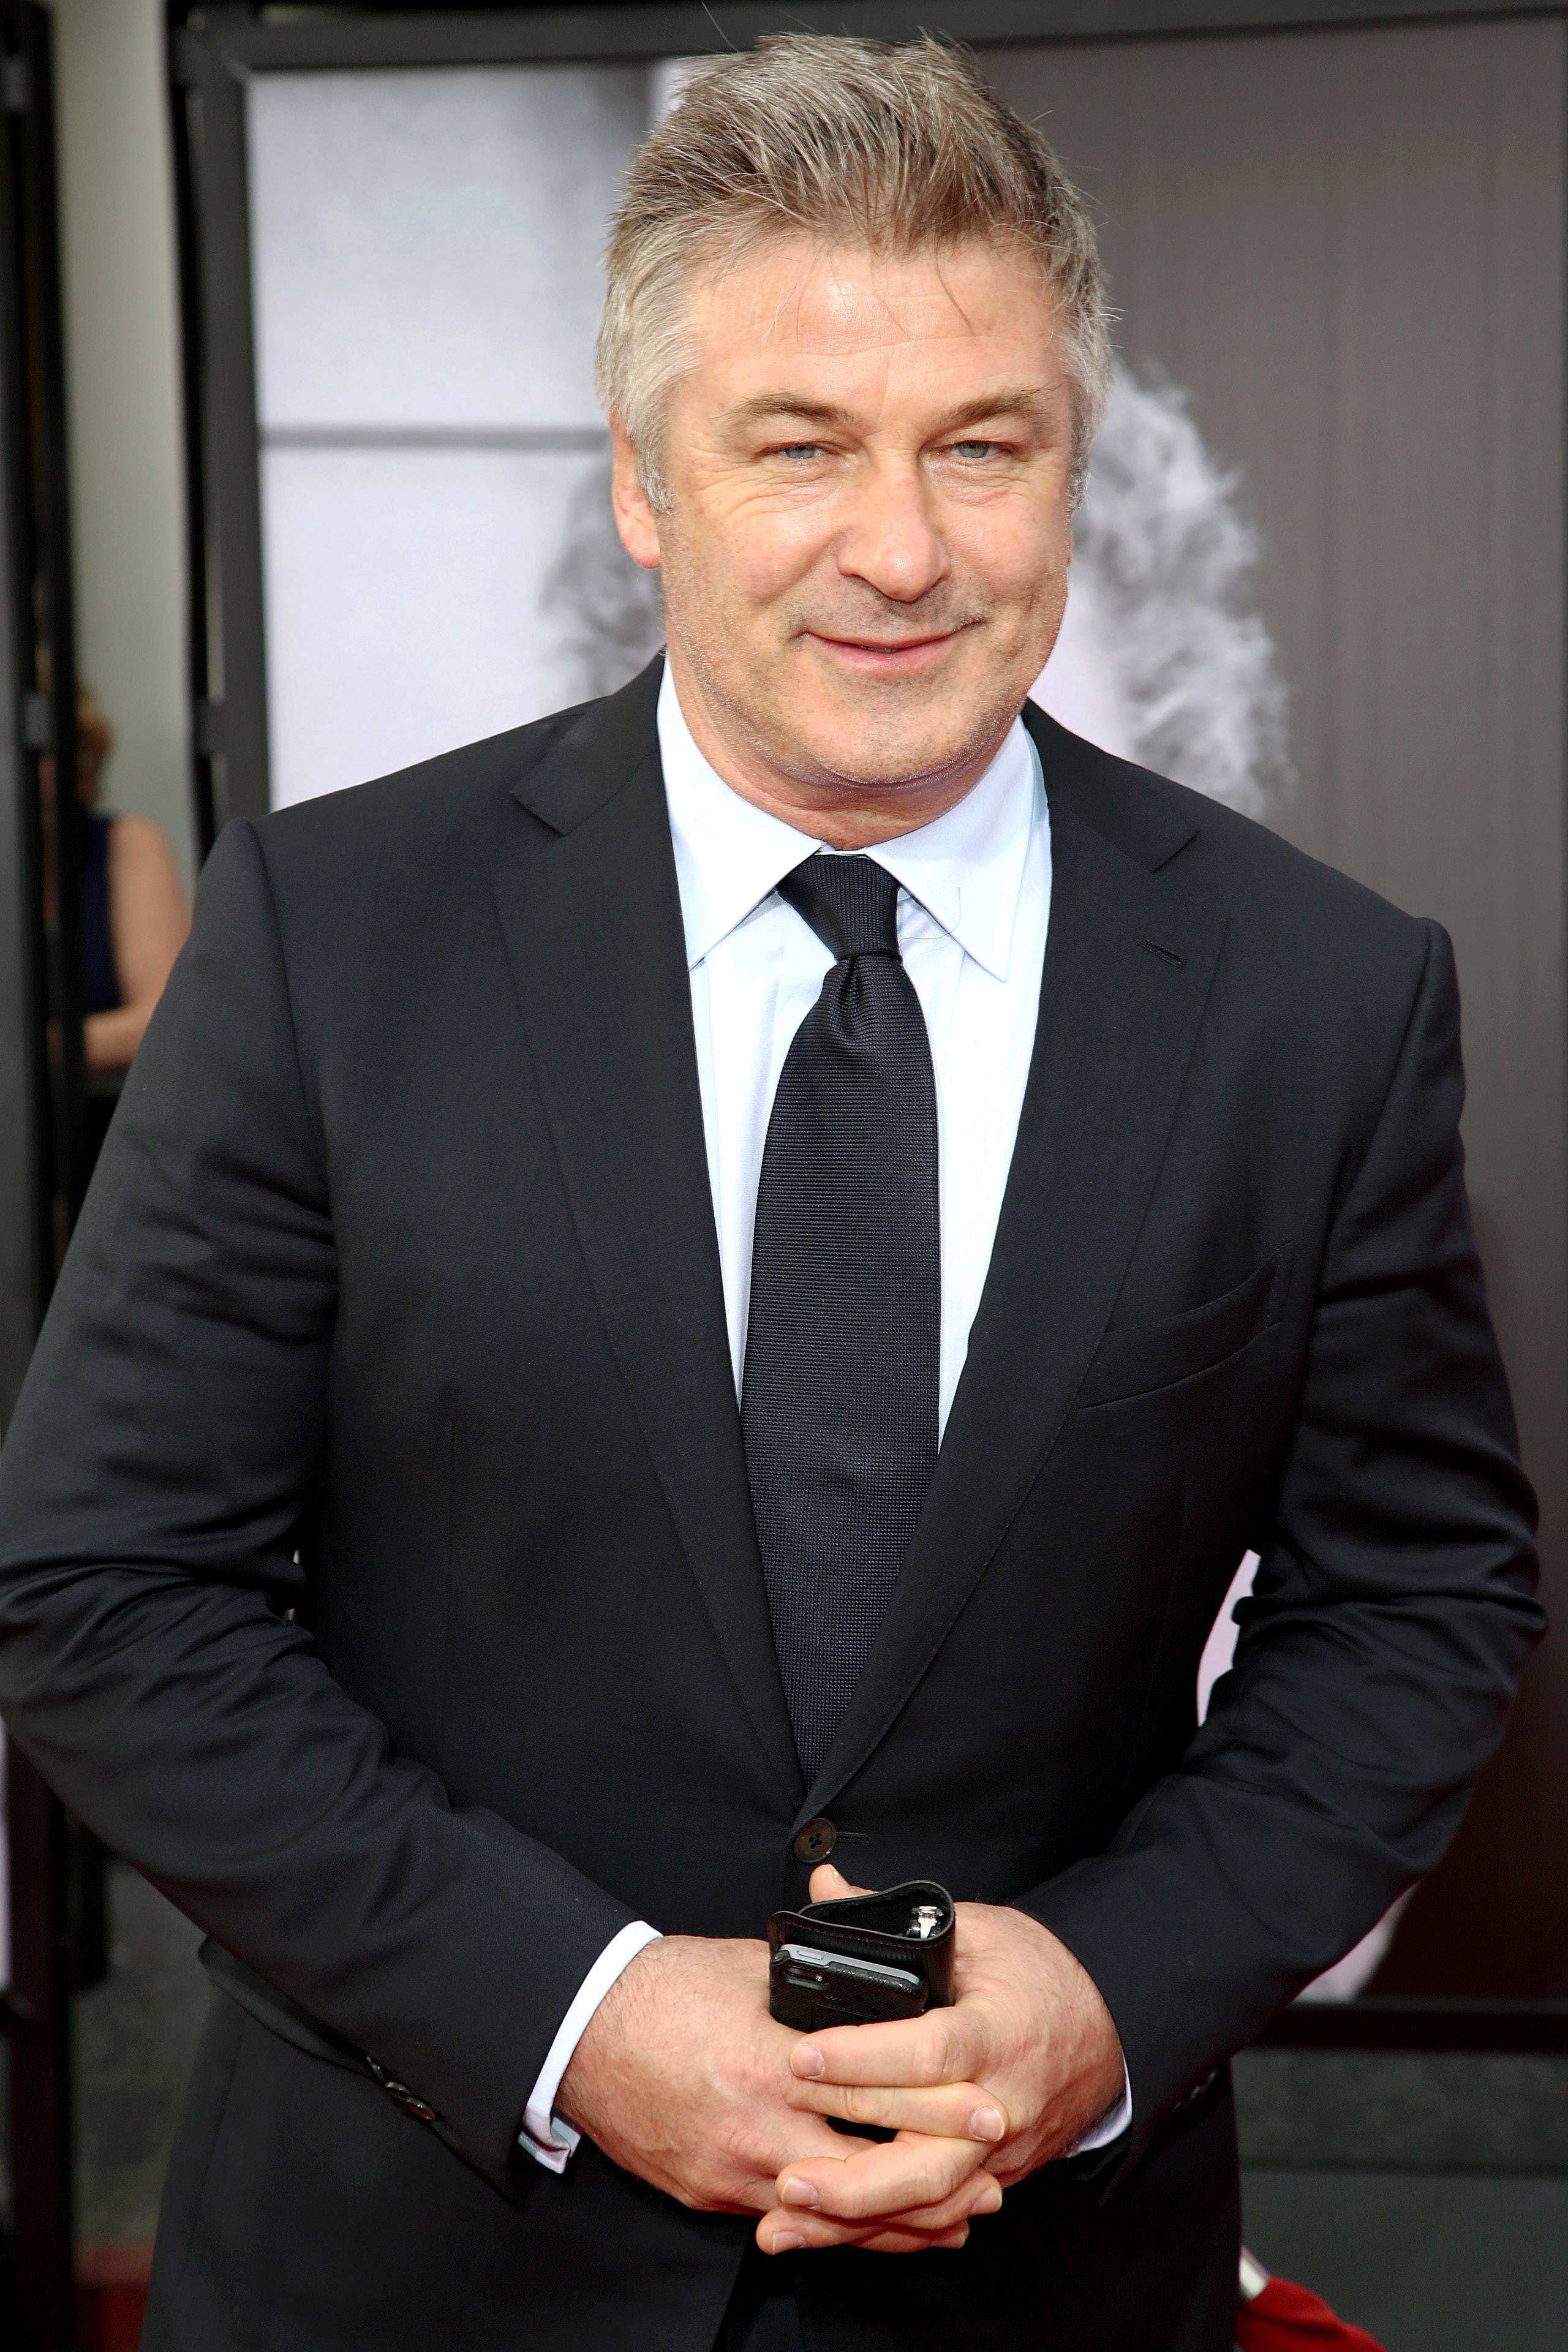 Police in New York City say actor Alec Baldwin has been arrested on charges of riding a bike the wrong way on the street and acting belligerently toward the arresting officers.